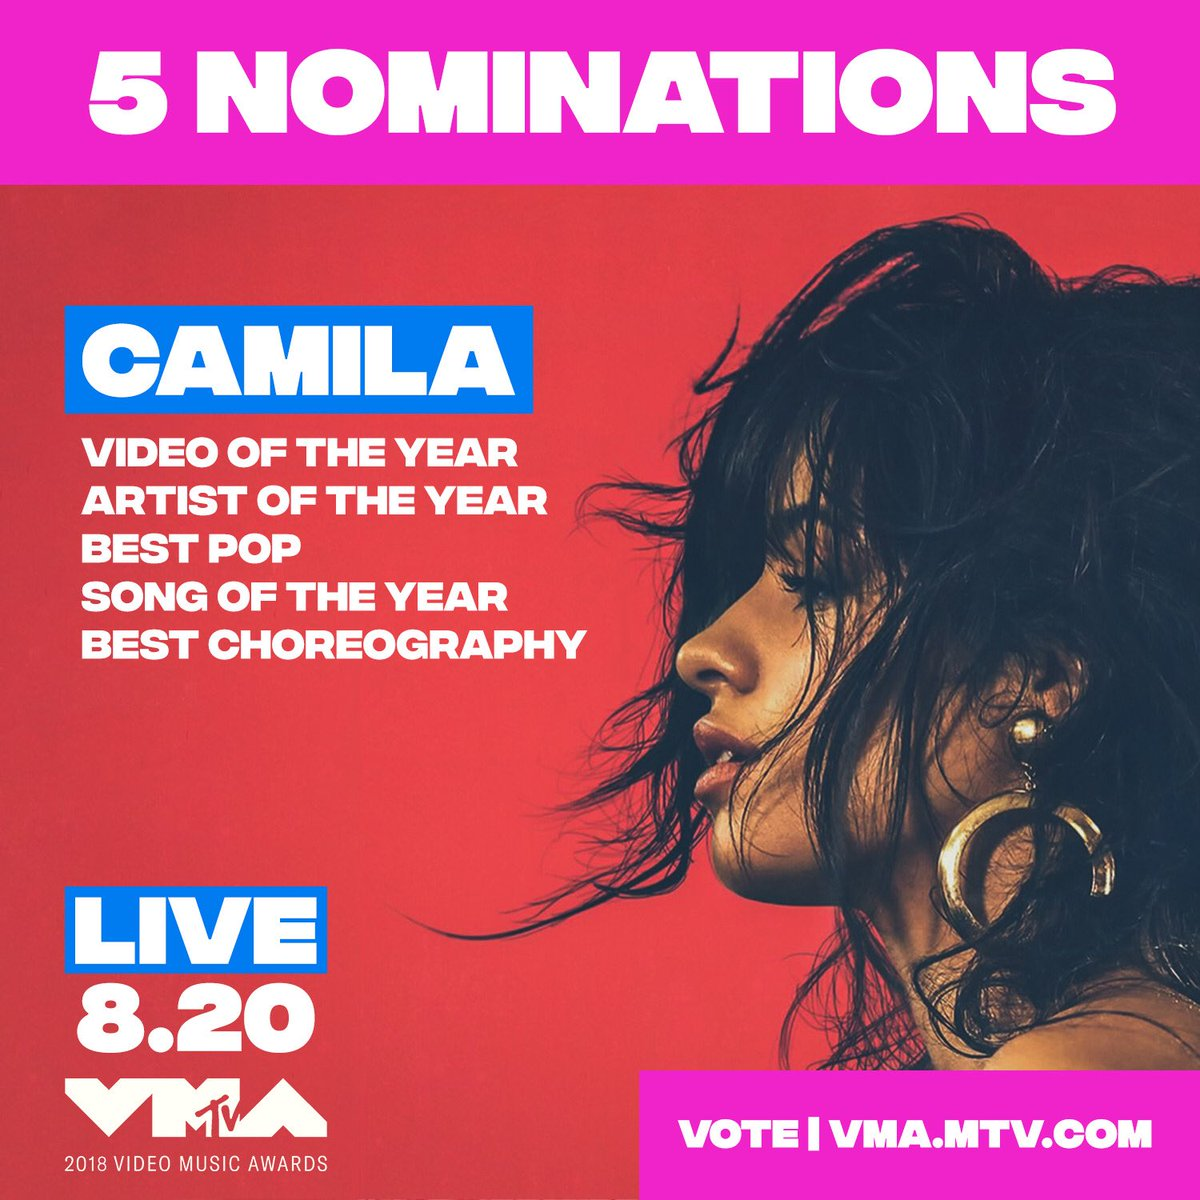 WHOAH. thank you so much @mtv for my 5 VMA nominations 😚😦😚 https://t.co/5aeTkoAS4O